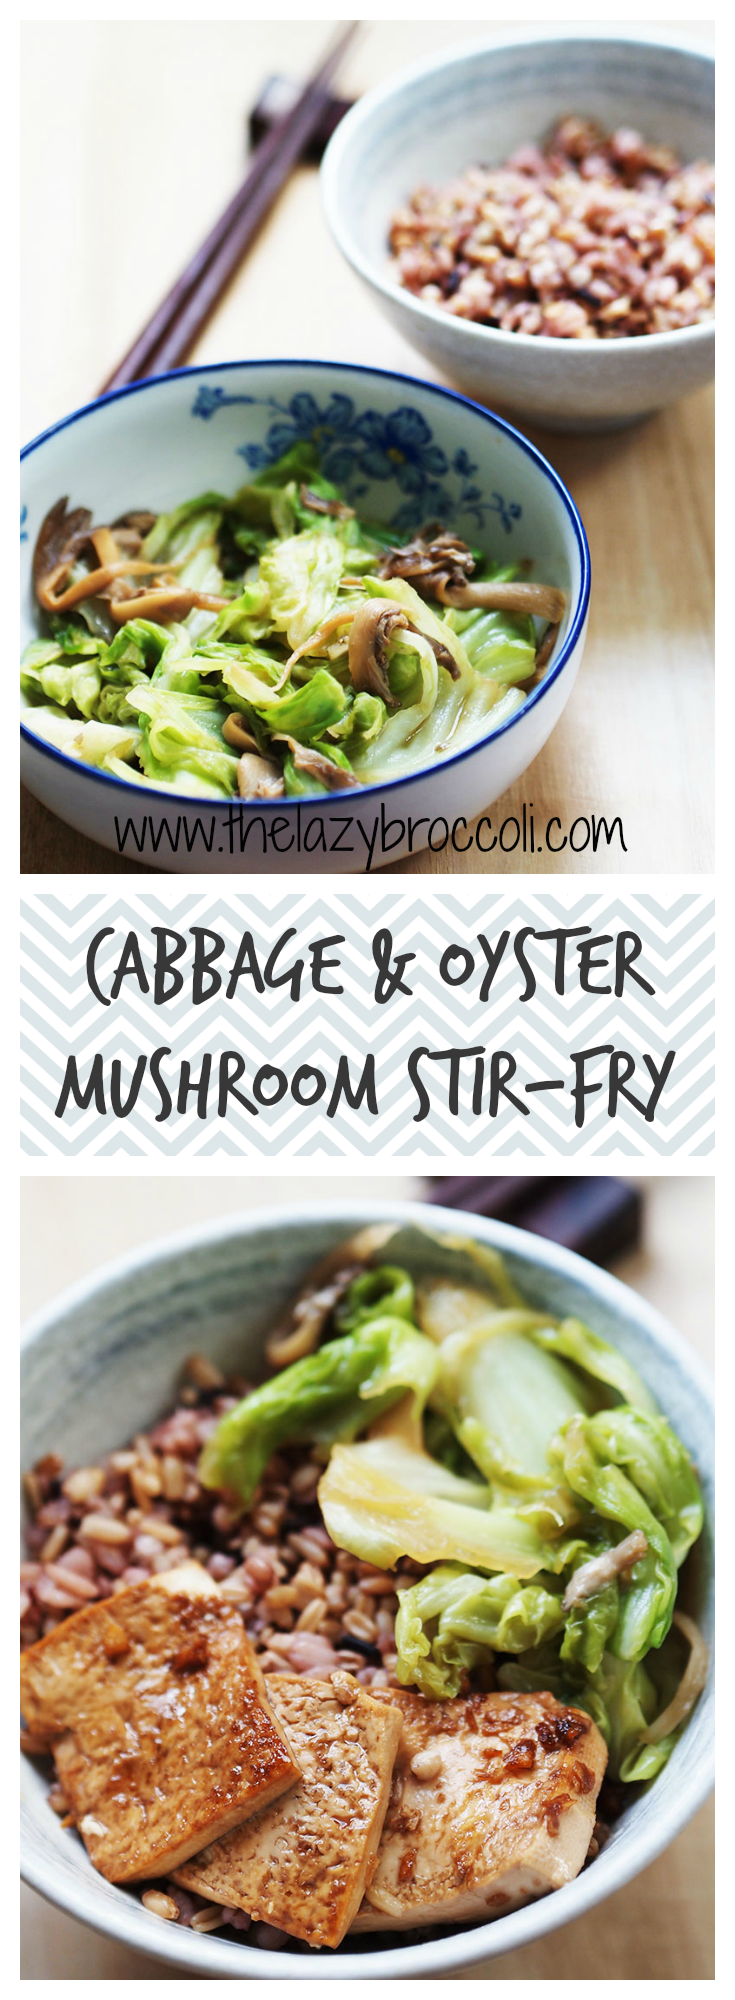 This cabbage and oyster mushroom stirfry is absolutely delicious even though it is ridiculously #easy to make! You don't even need a knife for this one ;) #cabbage #mushrooms #stirfry #vegan #vegetarian #noonionnogarlic #chinese #asian #recipe #glutenfree #lowcarb #thelazybroccoli